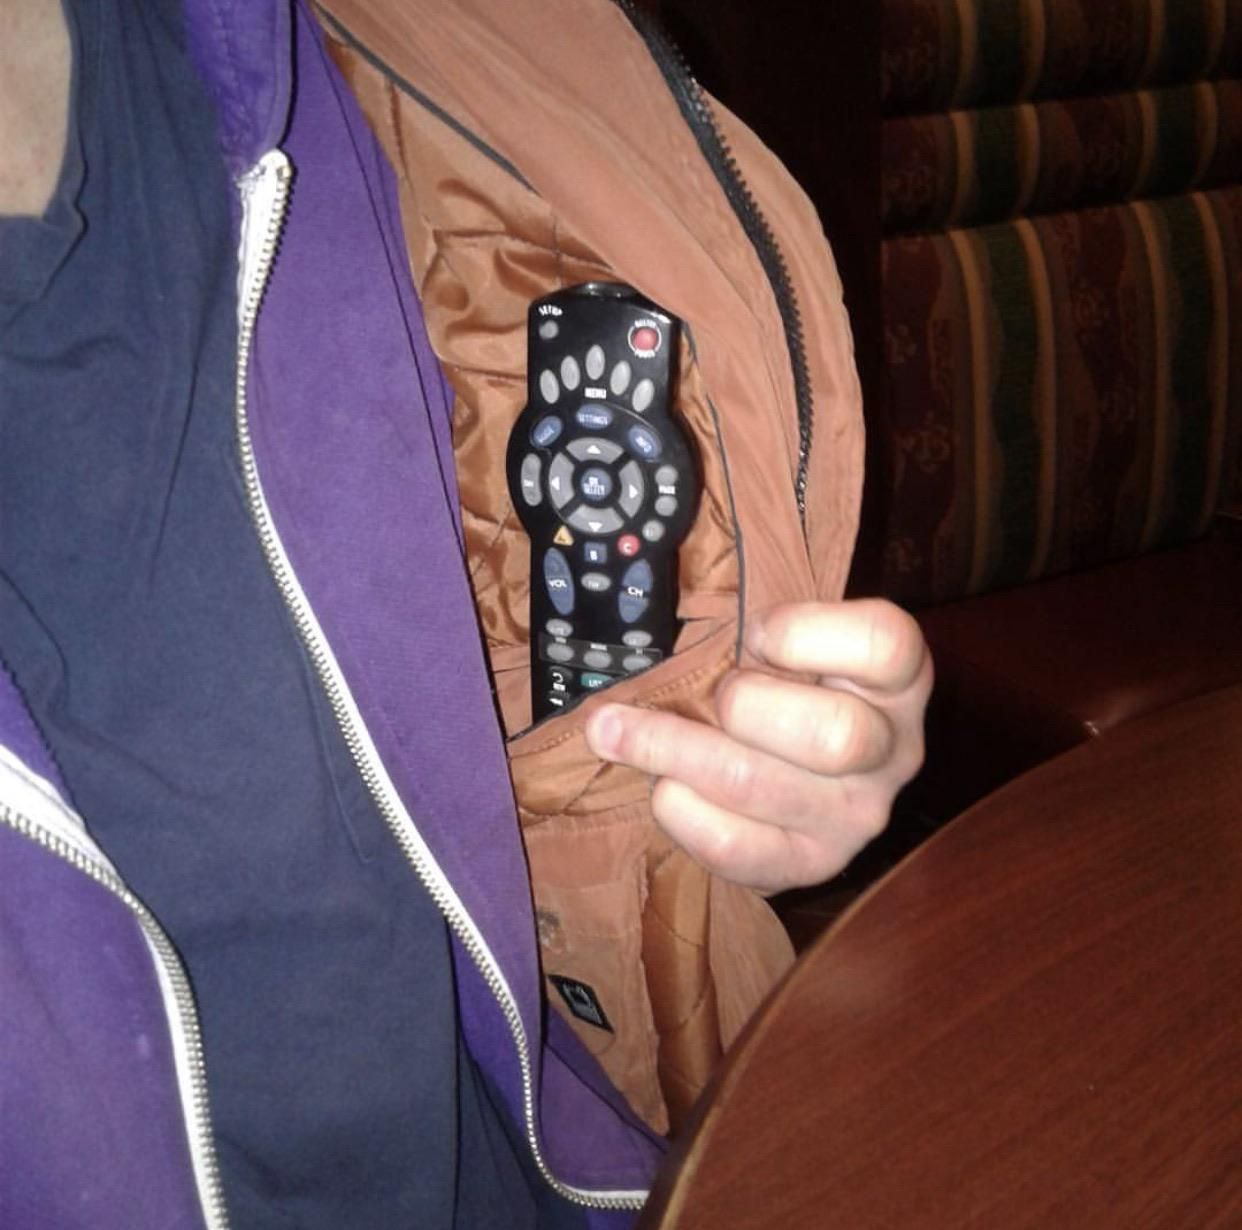 My dad apparently sneaks his remote into a local bar so he can change the channel when he doesn't like what's on. I'm equally embarrassed and impressed.